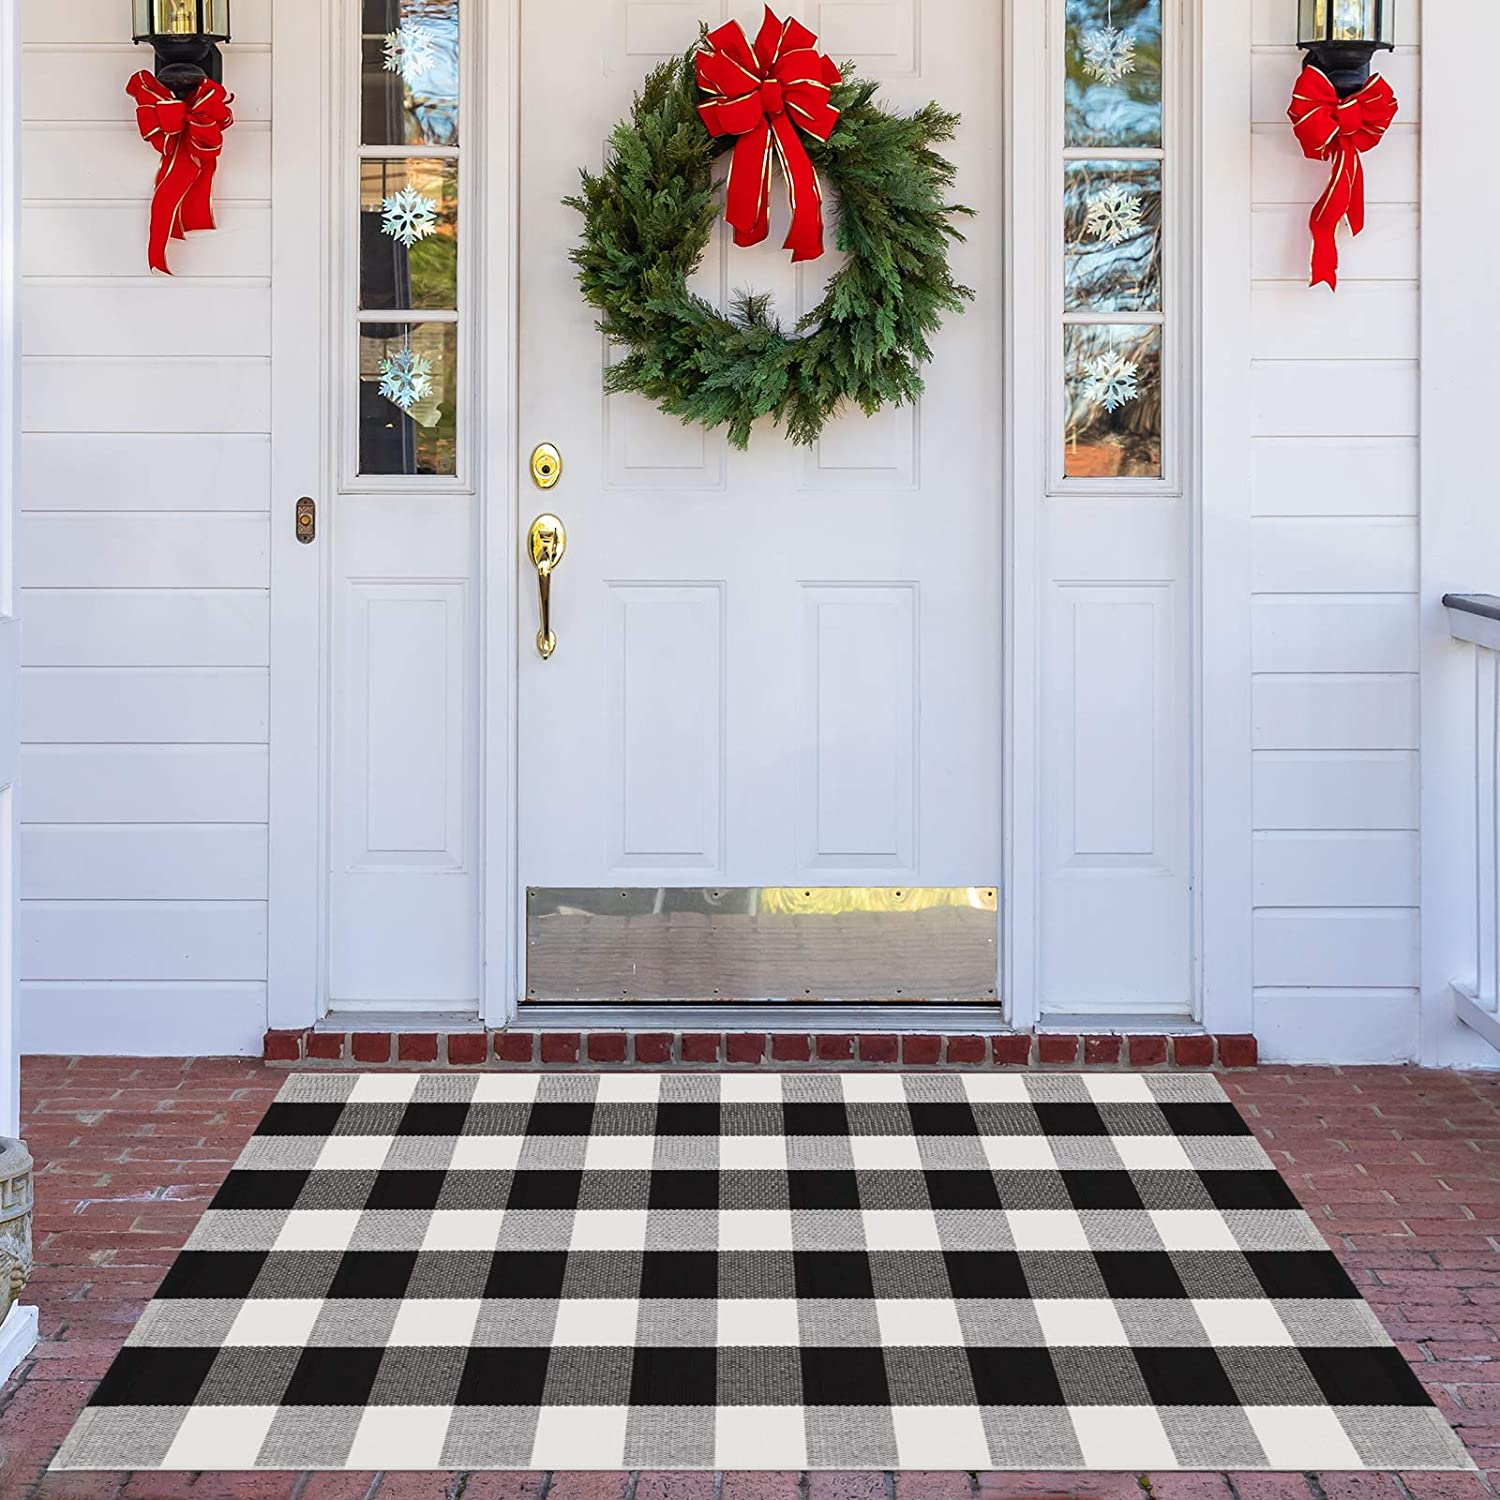 Syntus Buffalo Plaid Rug, 35.4 x 59 inch Doormat Kitchen Rug Black and White Cotton Outdoor Mat for Porch Bathroom Carpet Living Room Throw Area Rug